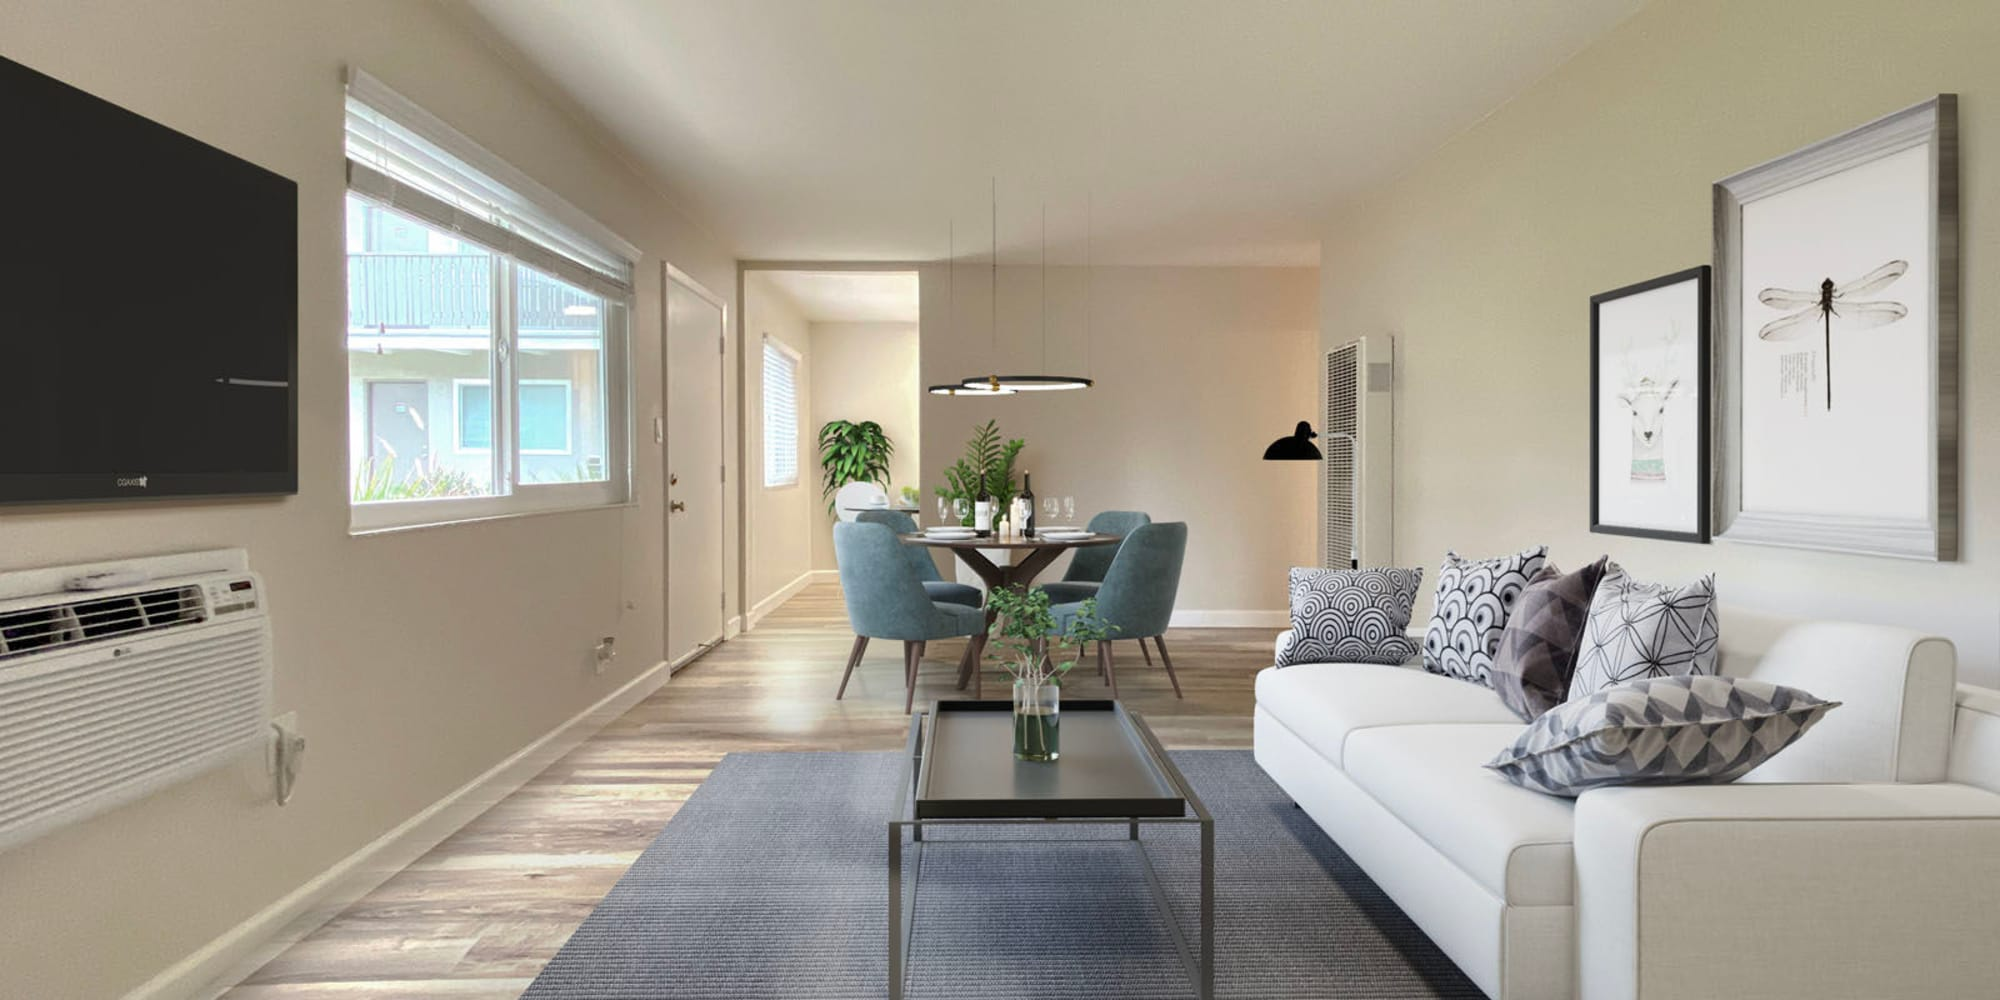 Model apartment's spacious open-concept living space with modern furnishings and a wall-mounted flatscreen TV at Pleasanton Heights in Pleasanton, California